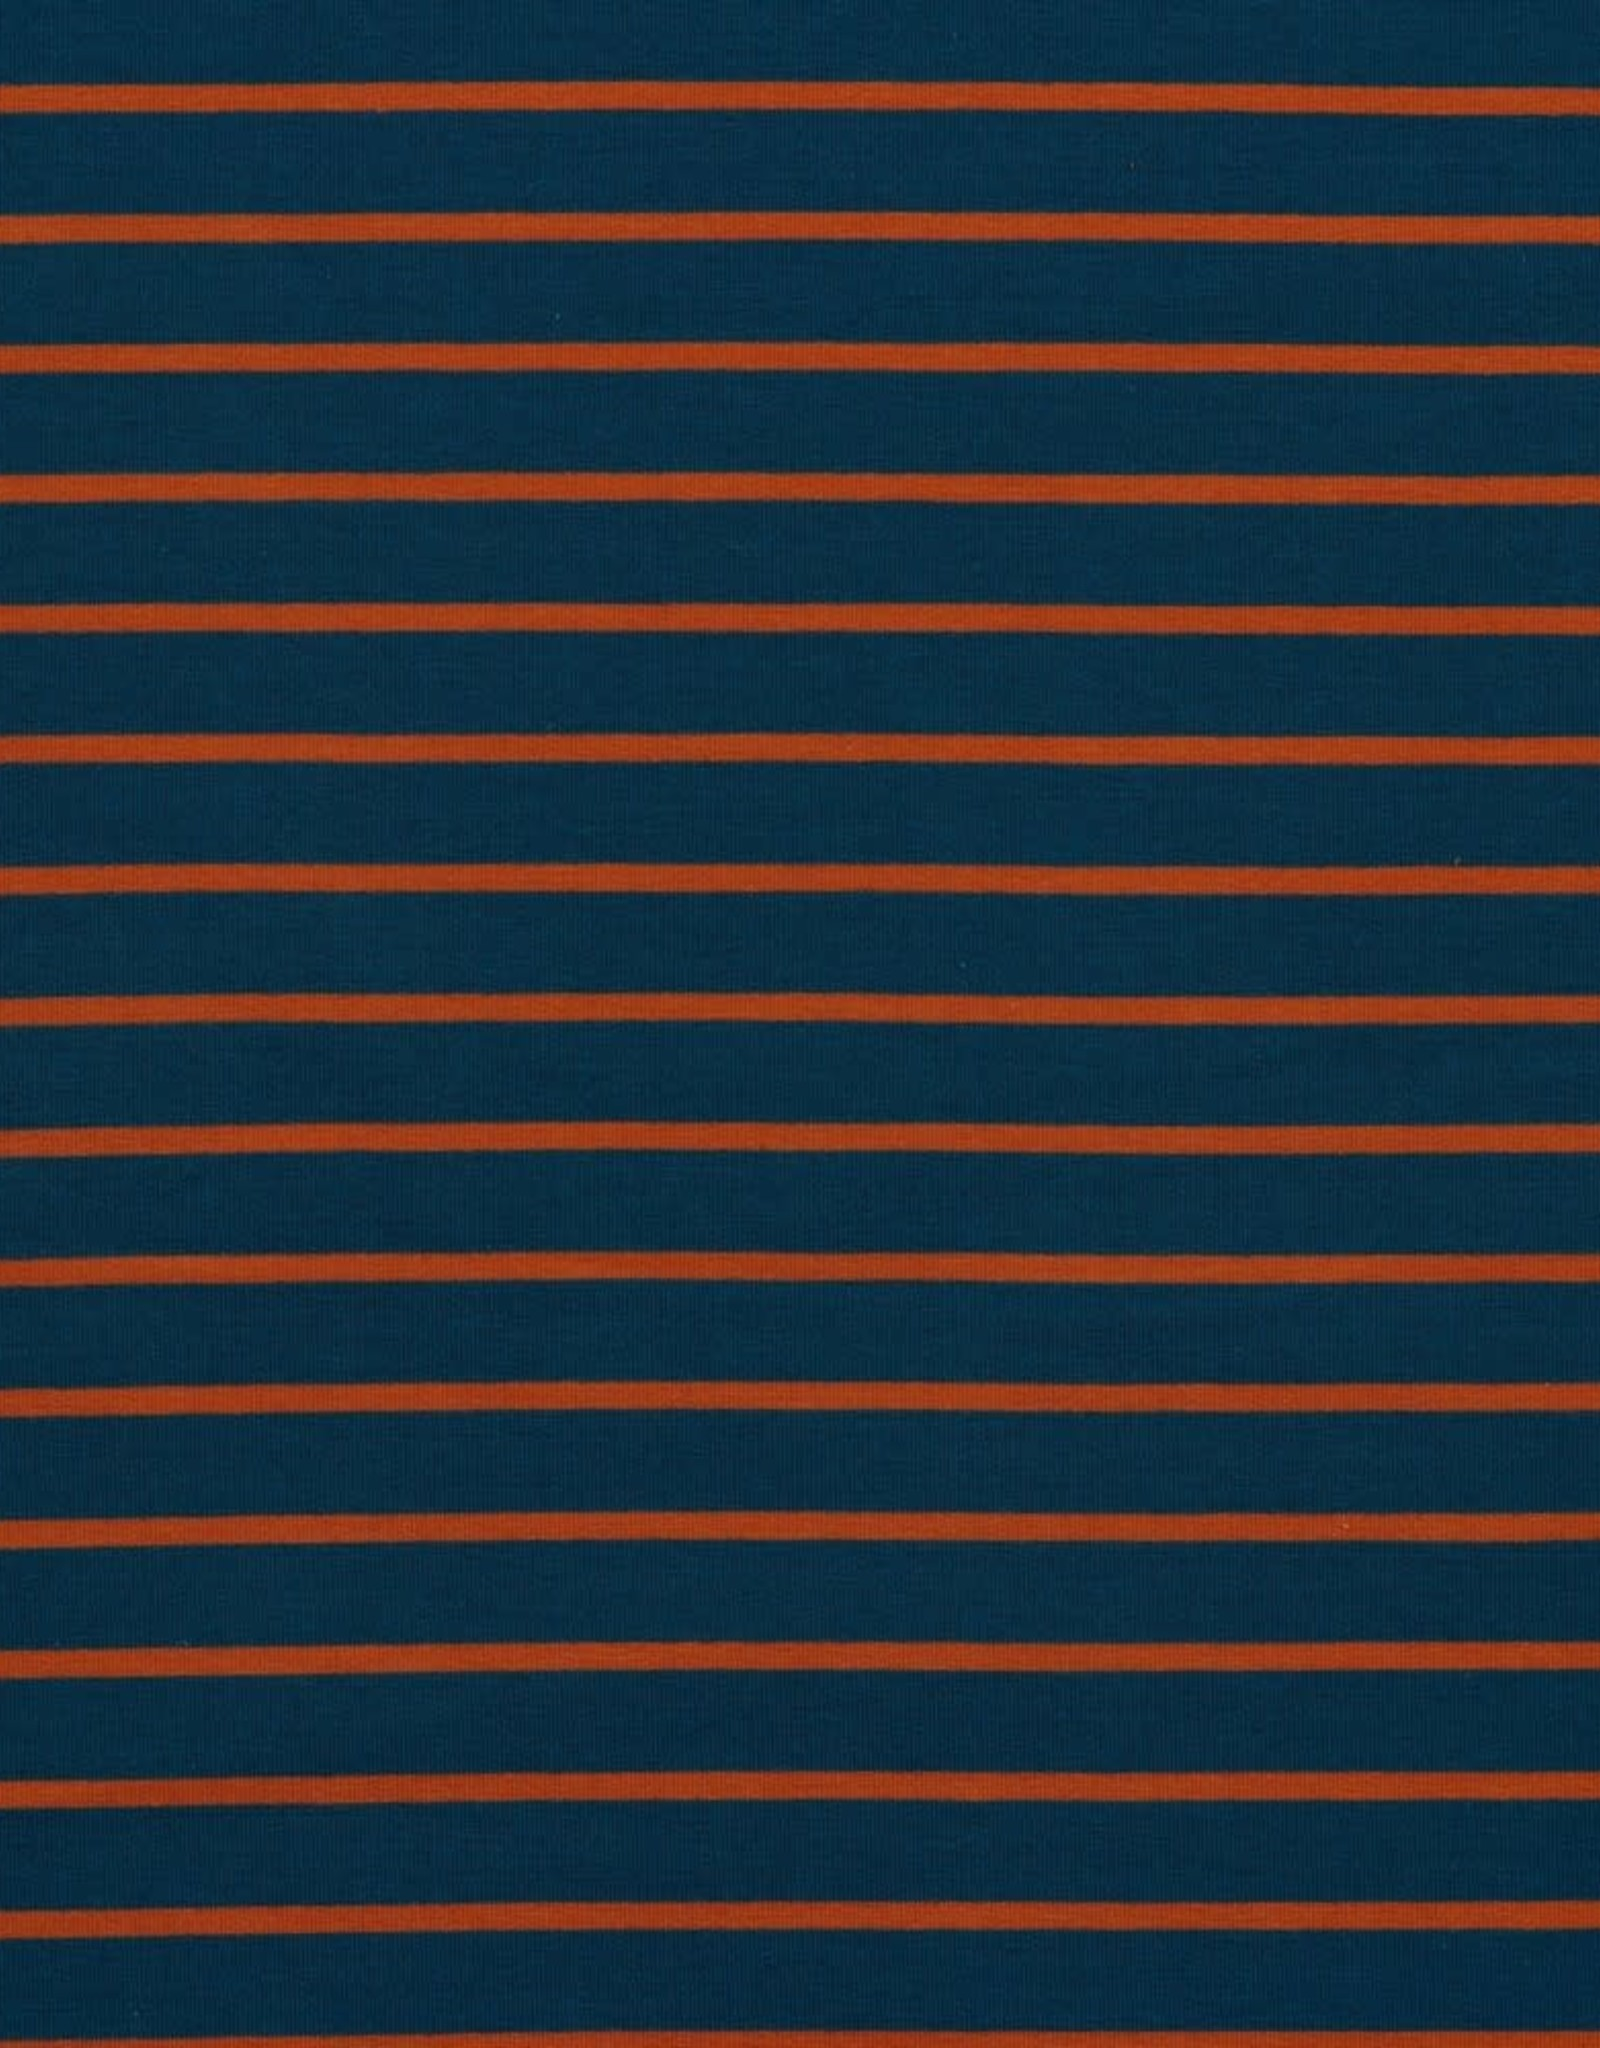 French Terry Striped - Jeans/Terra